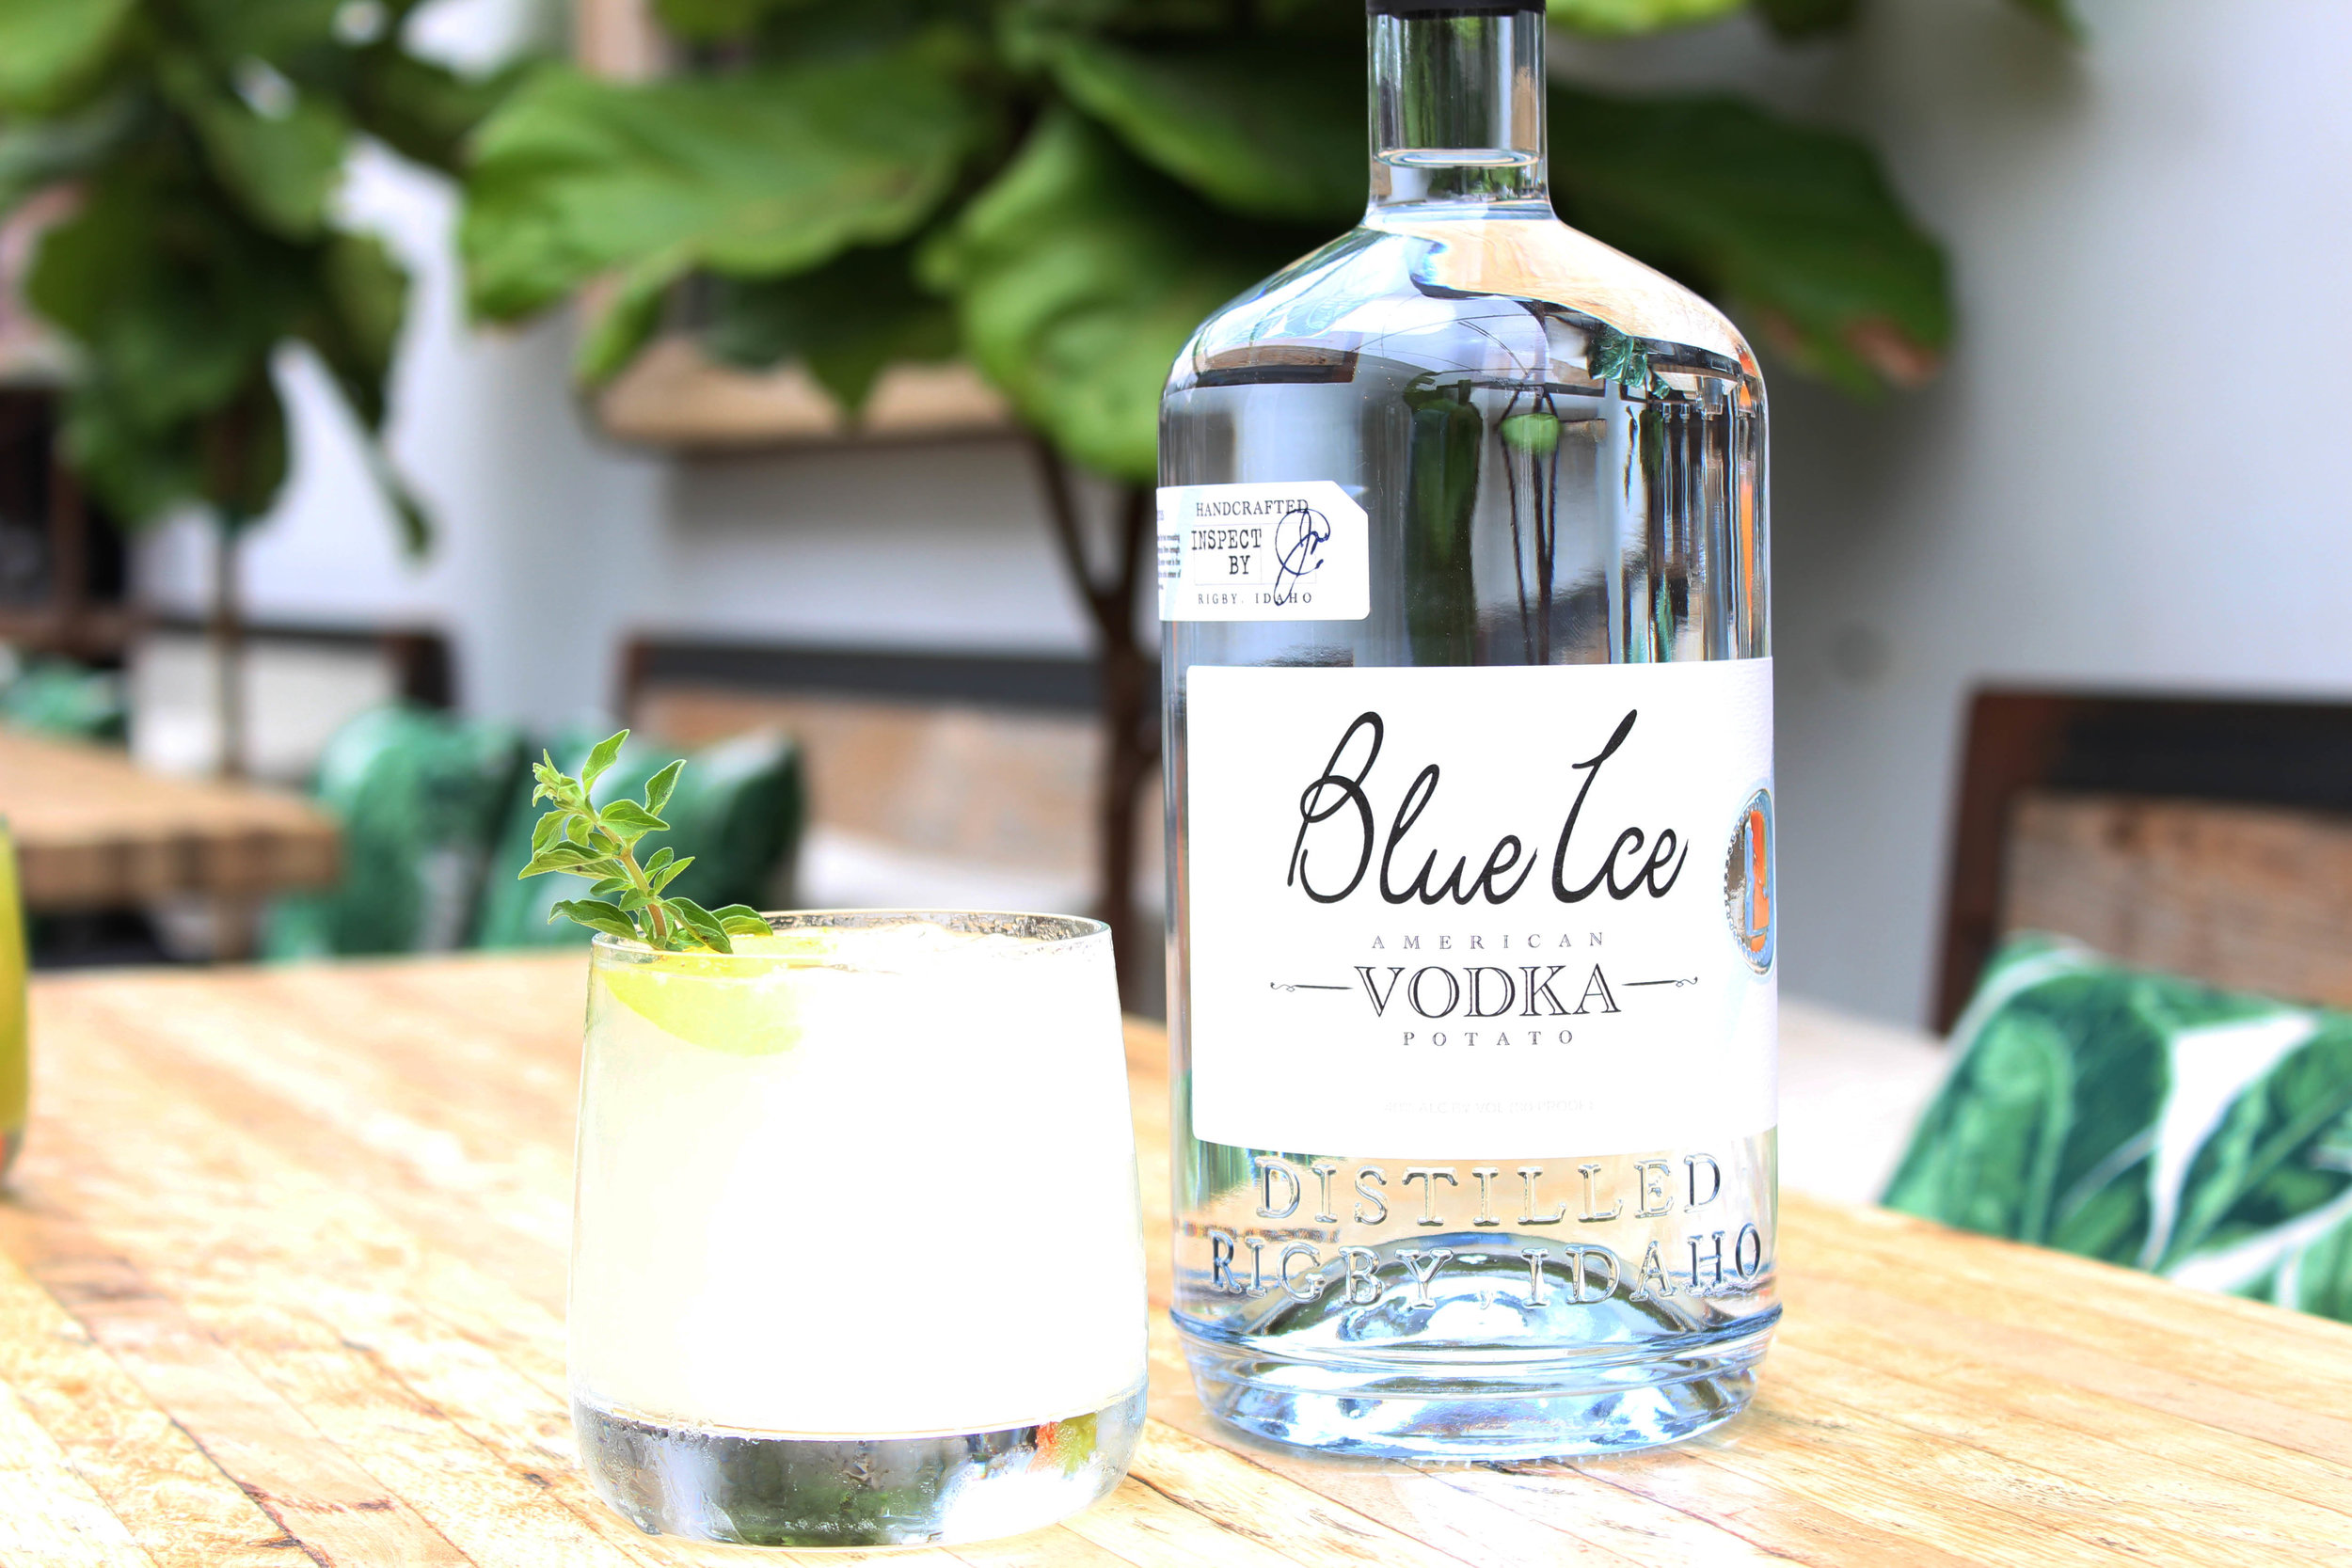 Dry Ice - -1.5oz Blue Ice Vodka-1/2oz Cointreau-1/4oz agave-1/2oz lemon juice-3oz Brut IPA